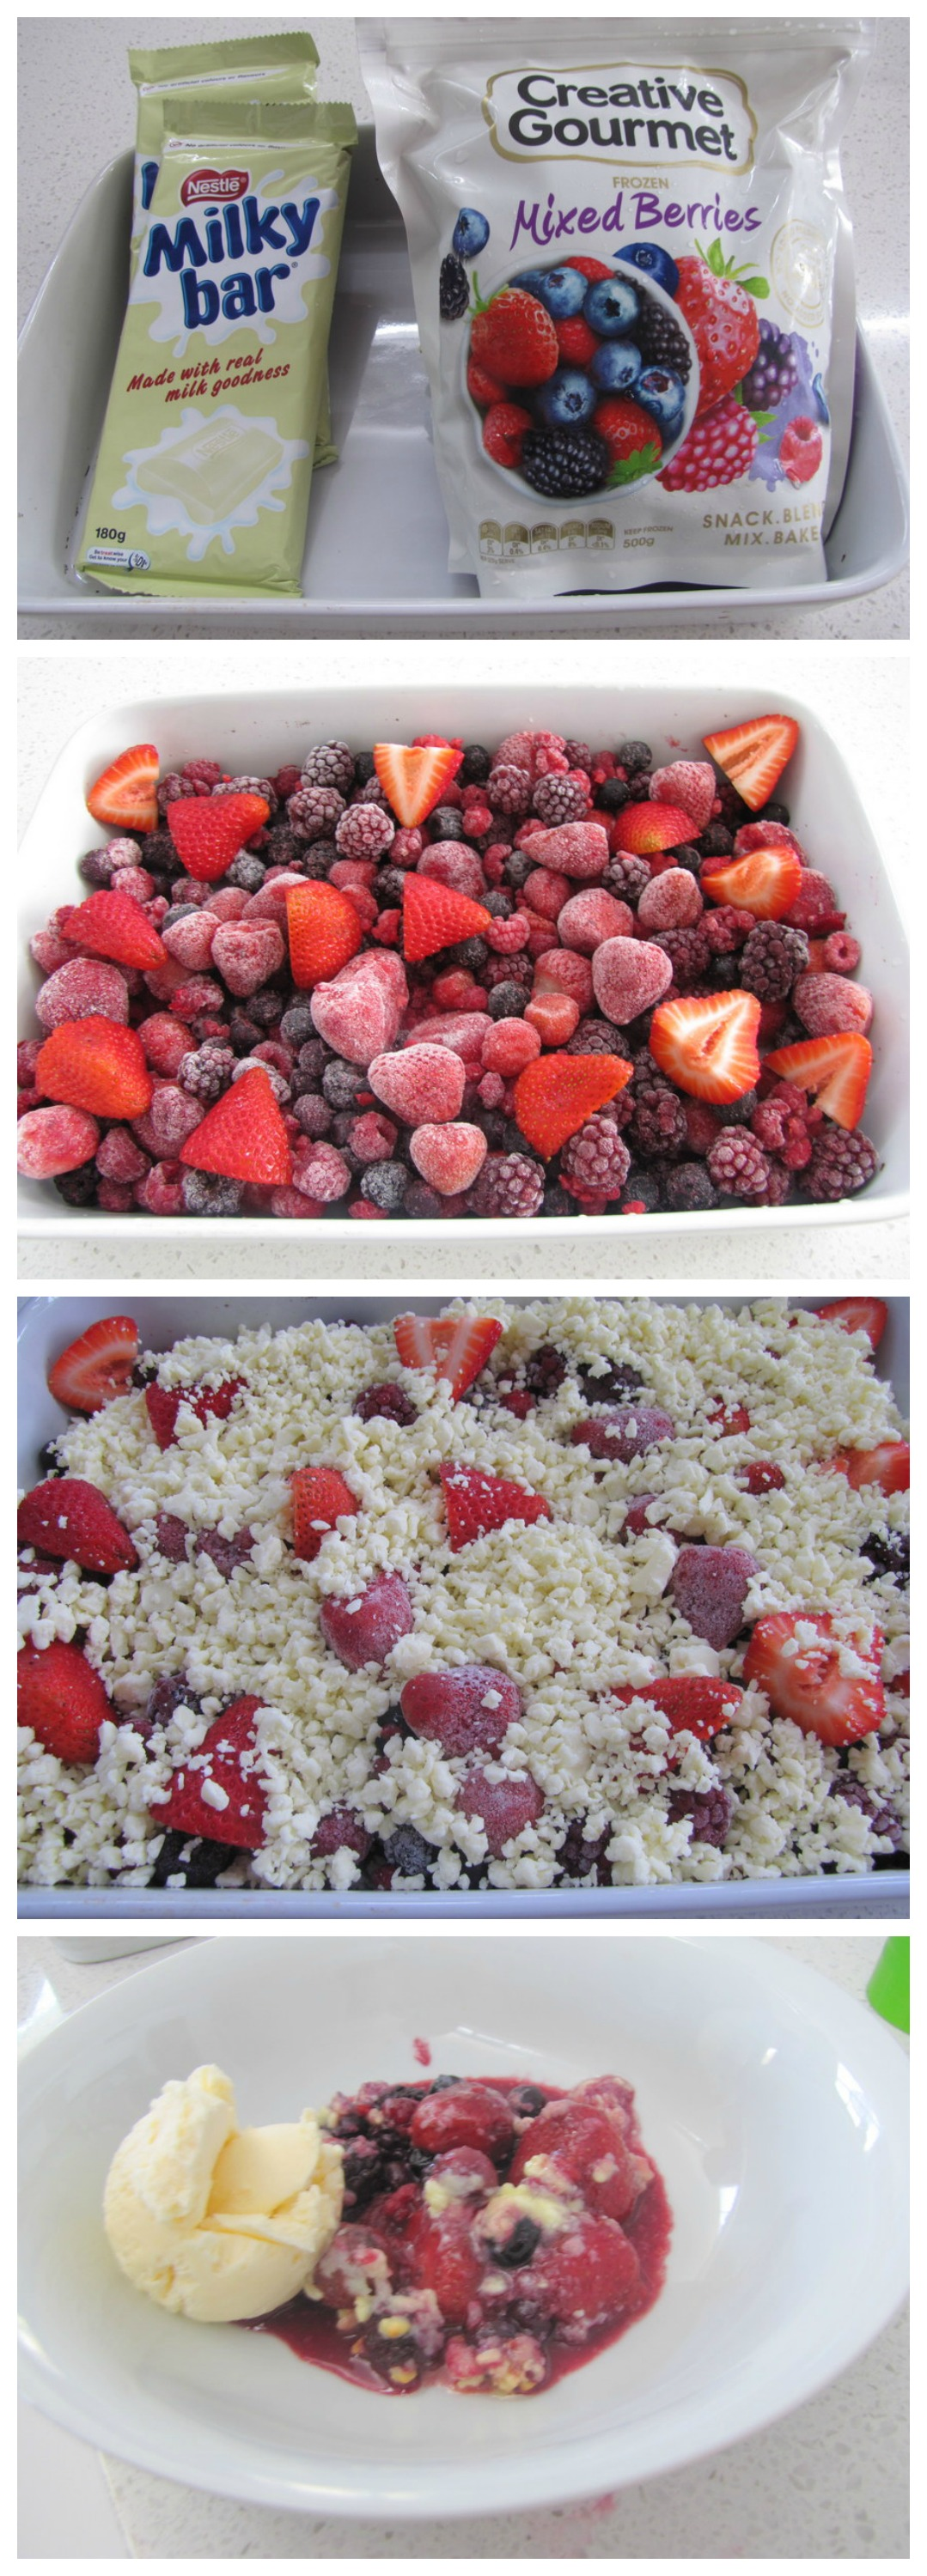 Berry & Chocolate Dessert - Only 2 Ingredients